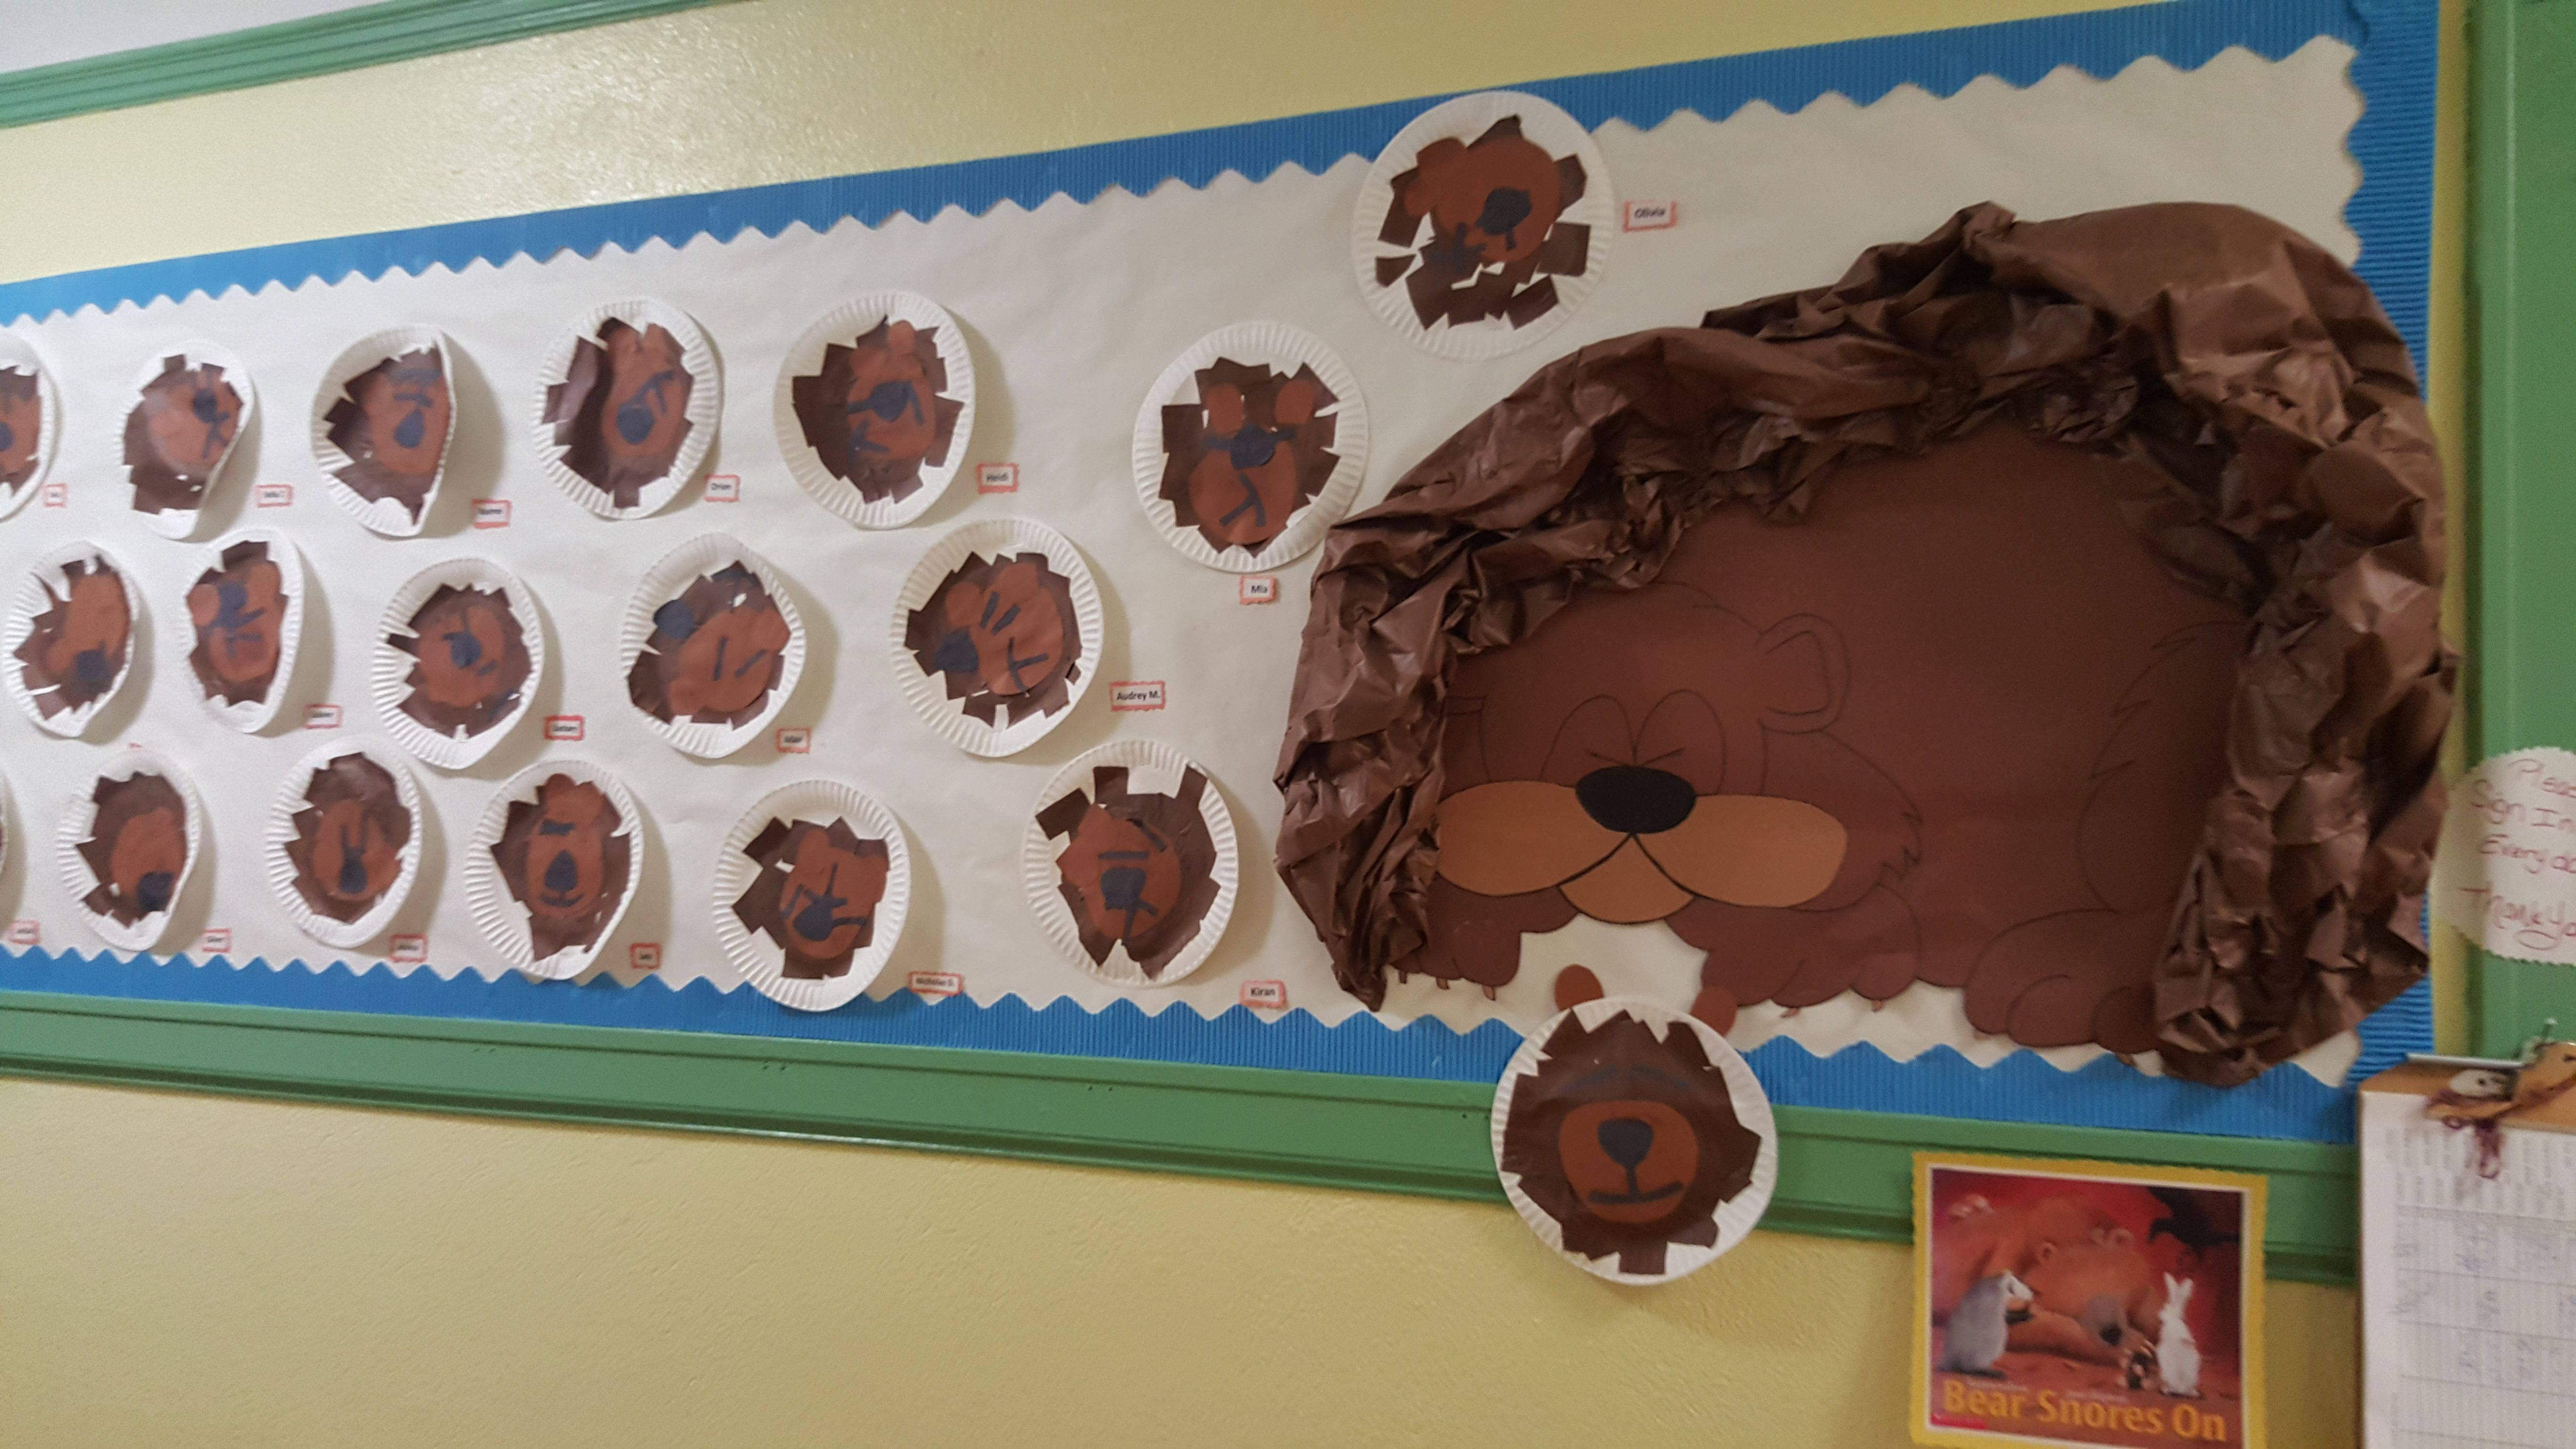 Hibernation Bulletin Board With The Book Bear Snores On